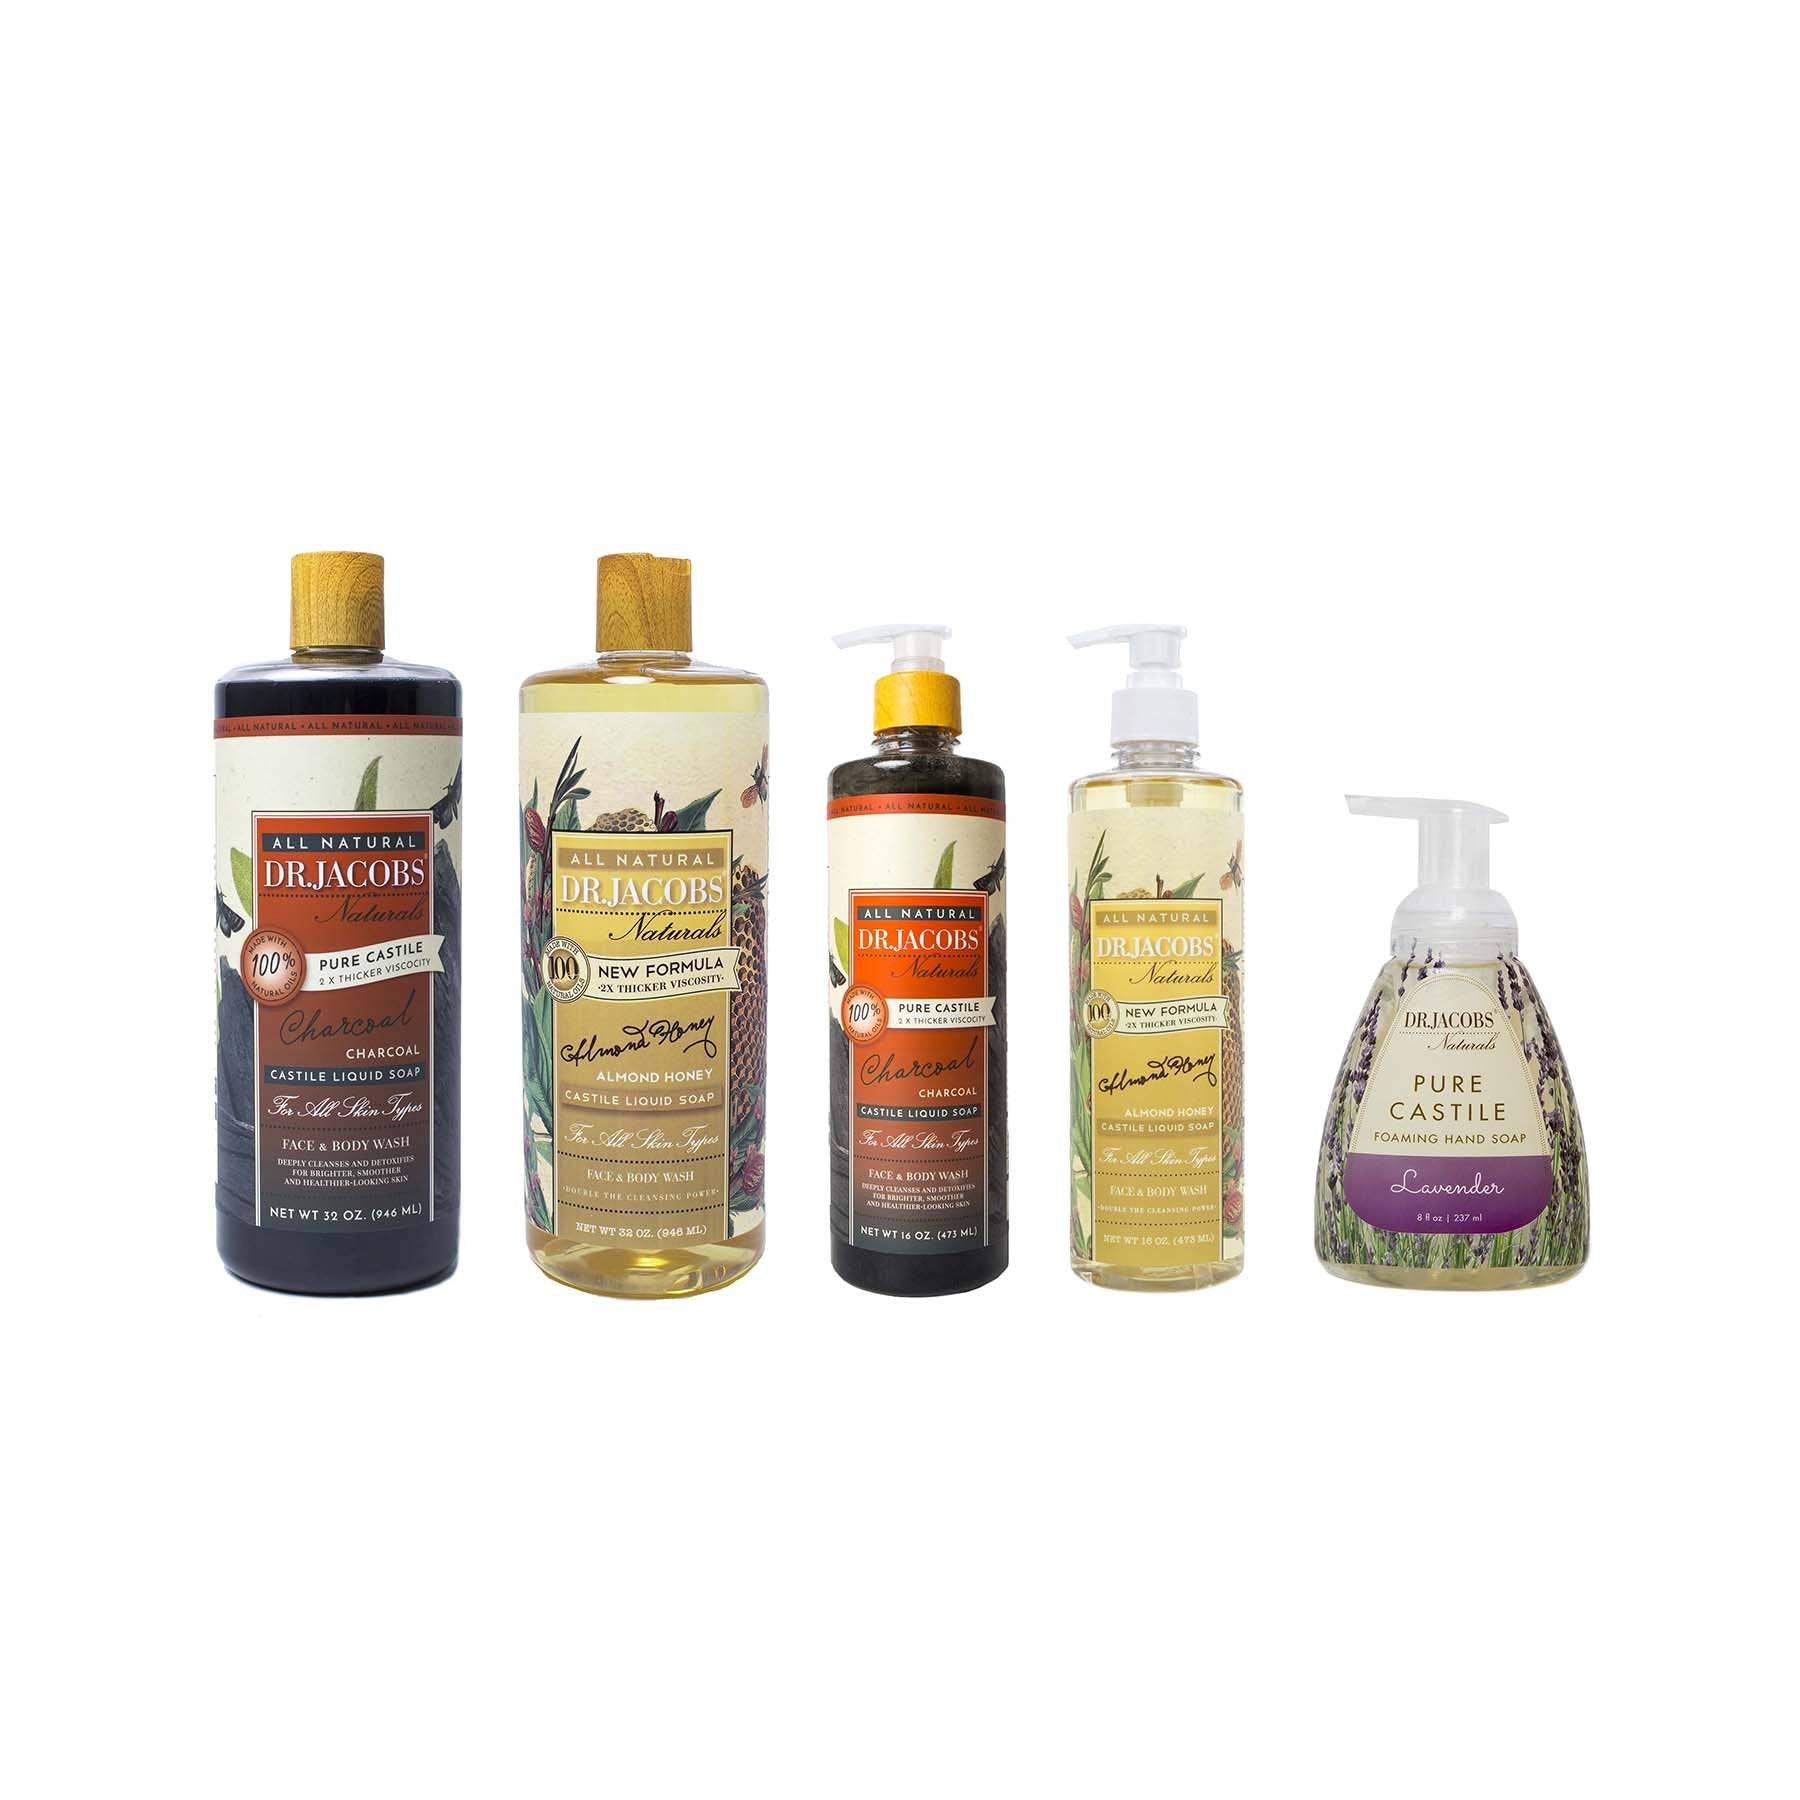 'Best Sellers' Bundle by Dr. Jacobs Naturals